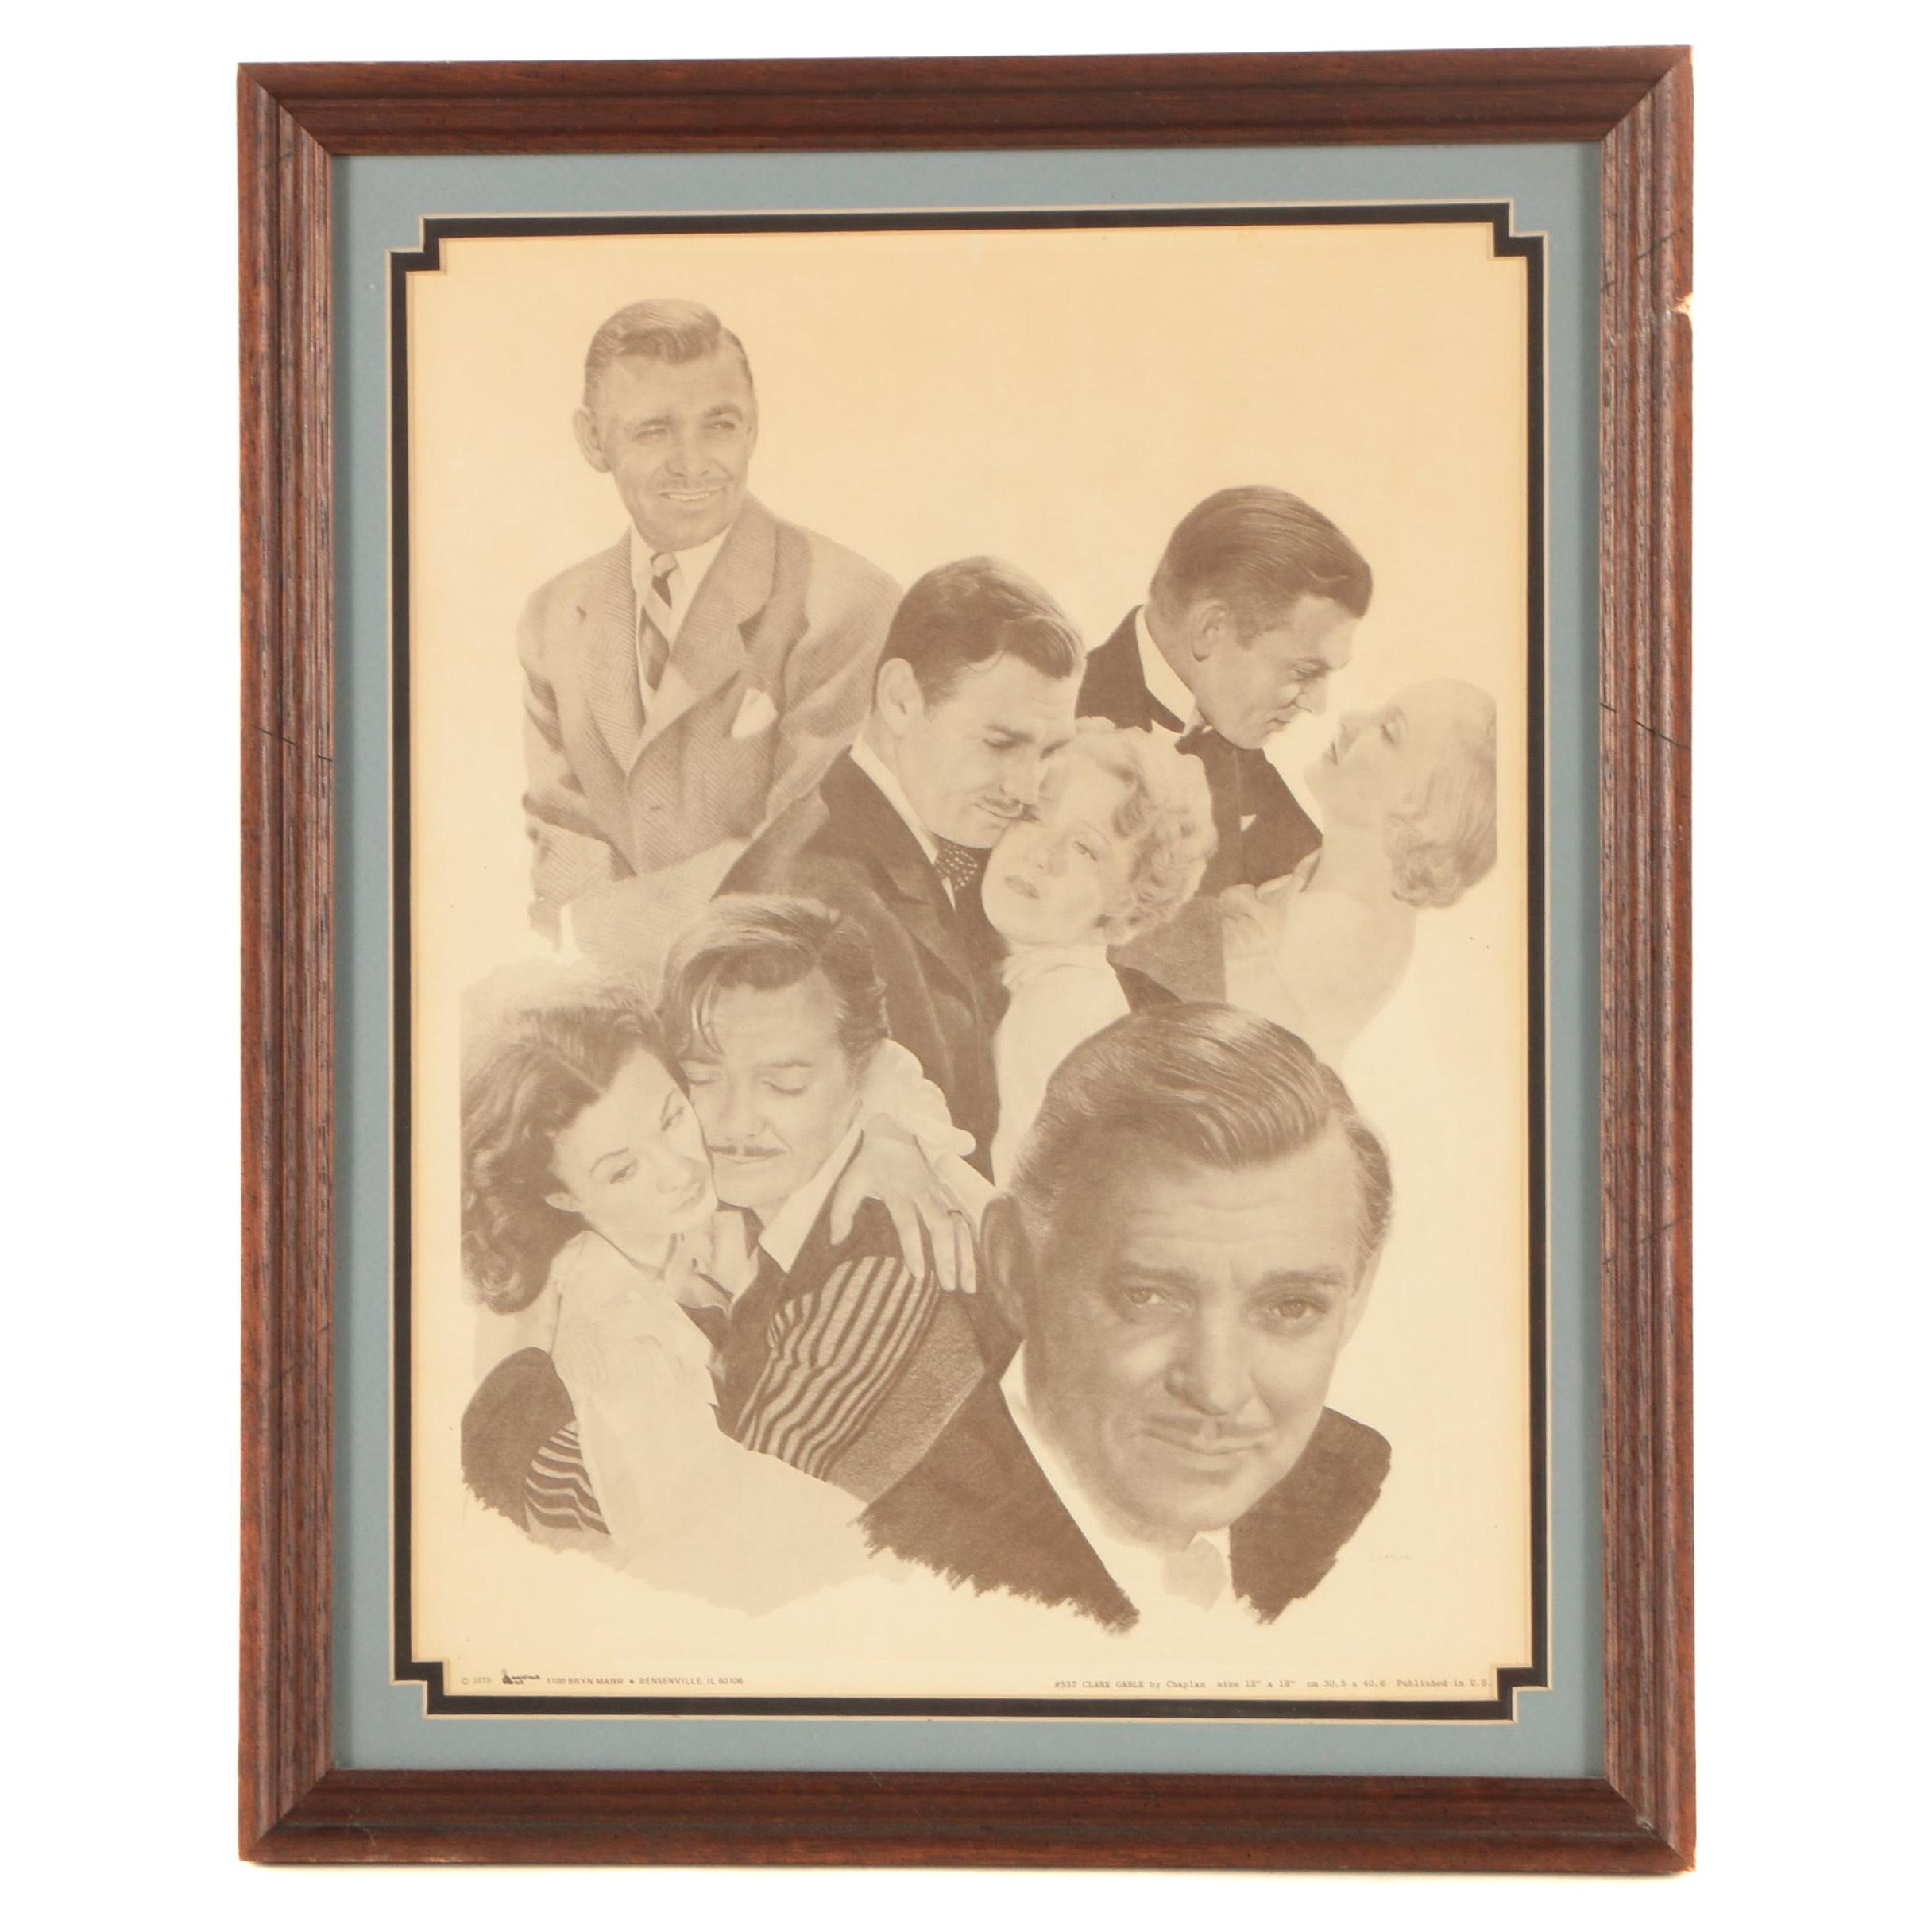 Halftone Print After Chaplan Drawings of Clark Gable and his Leading Ladies